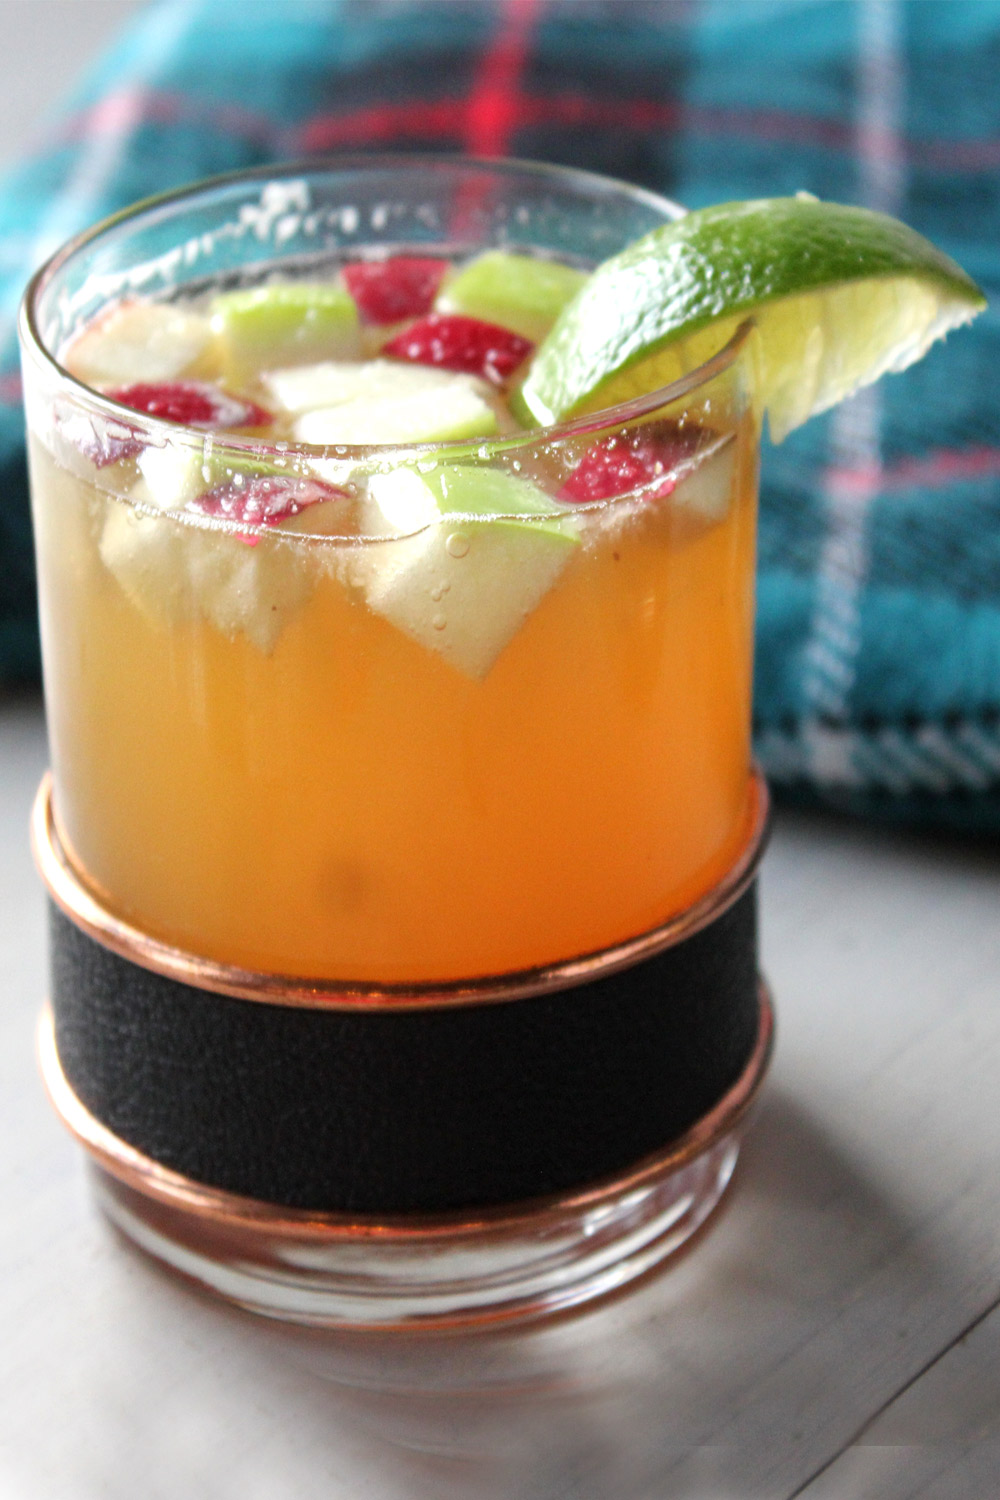 Bourbon and apple cider cocktail topped with red and green cubed apples and lime wedge